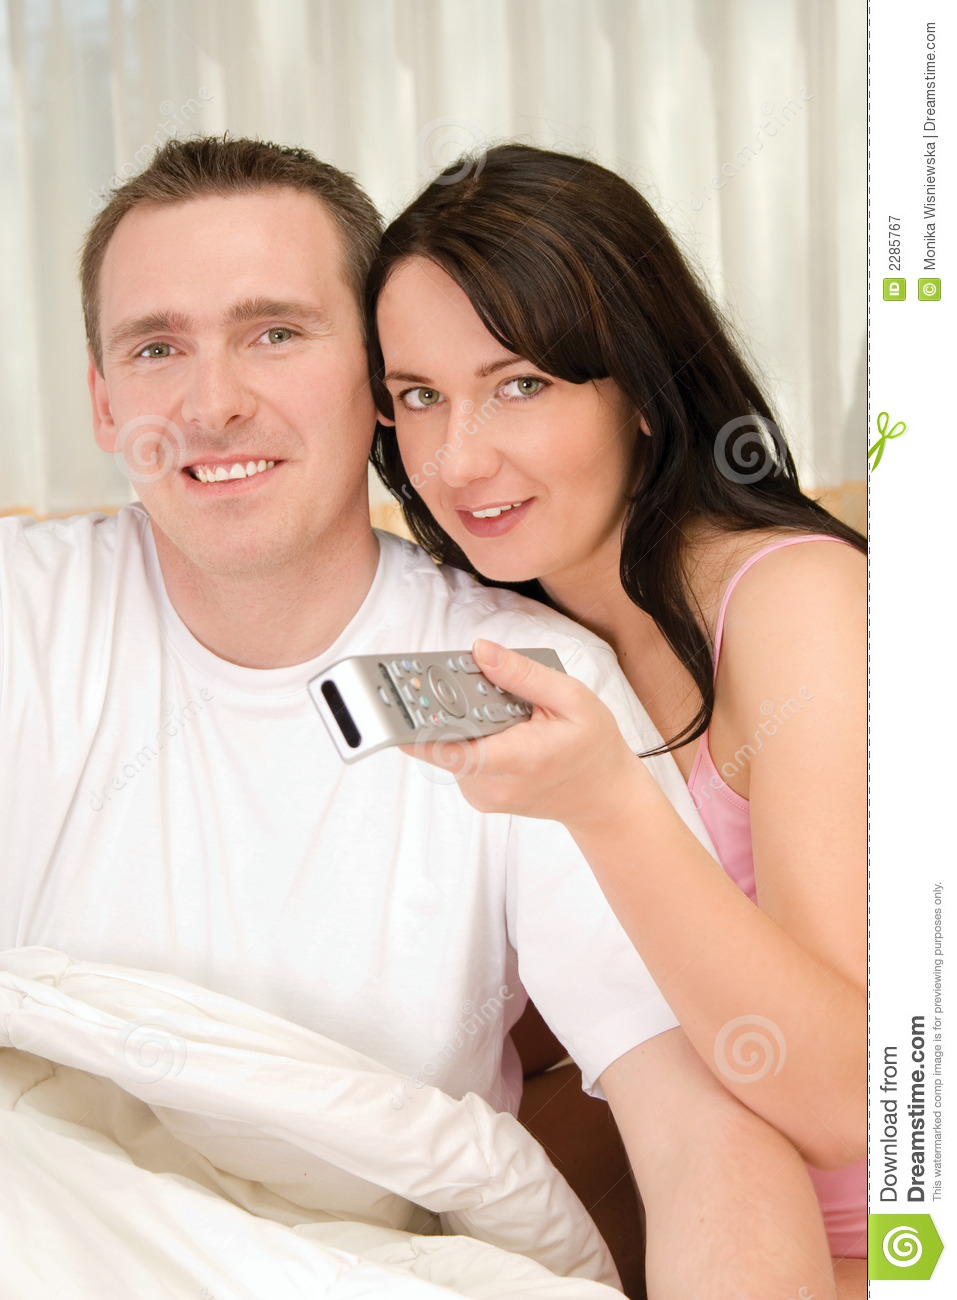 Couple together tv watching